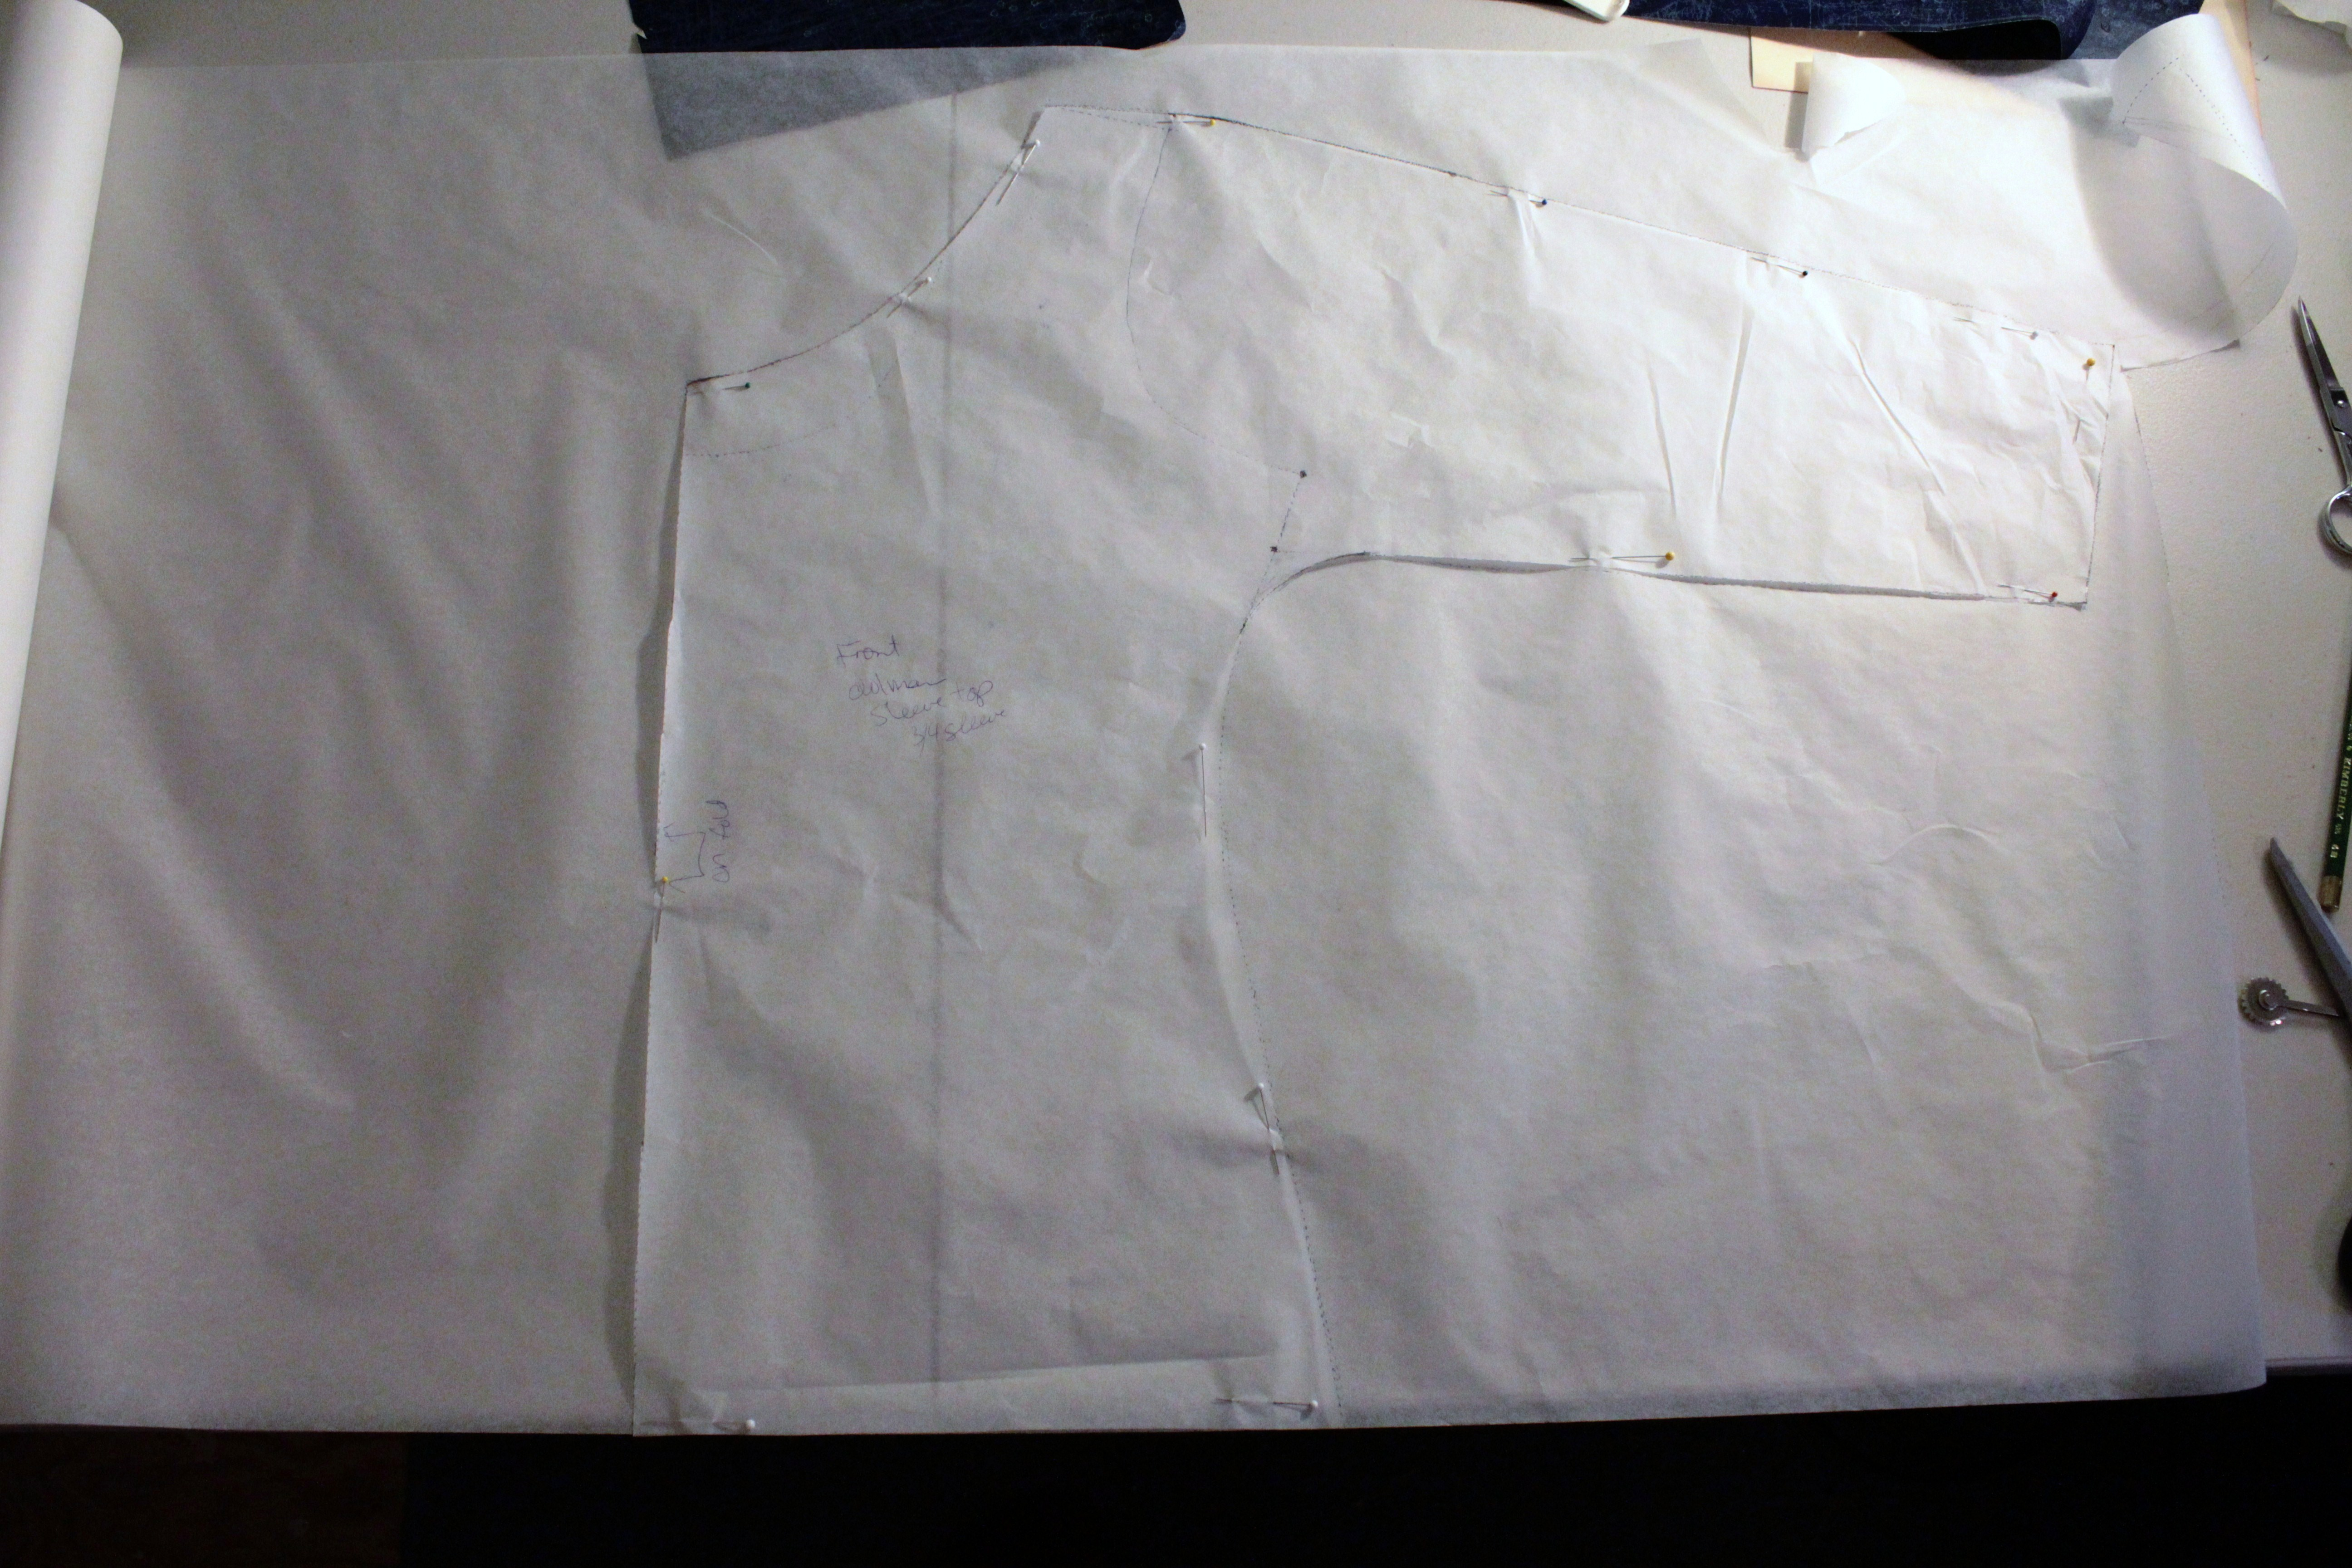 Trace both the front and back pieces